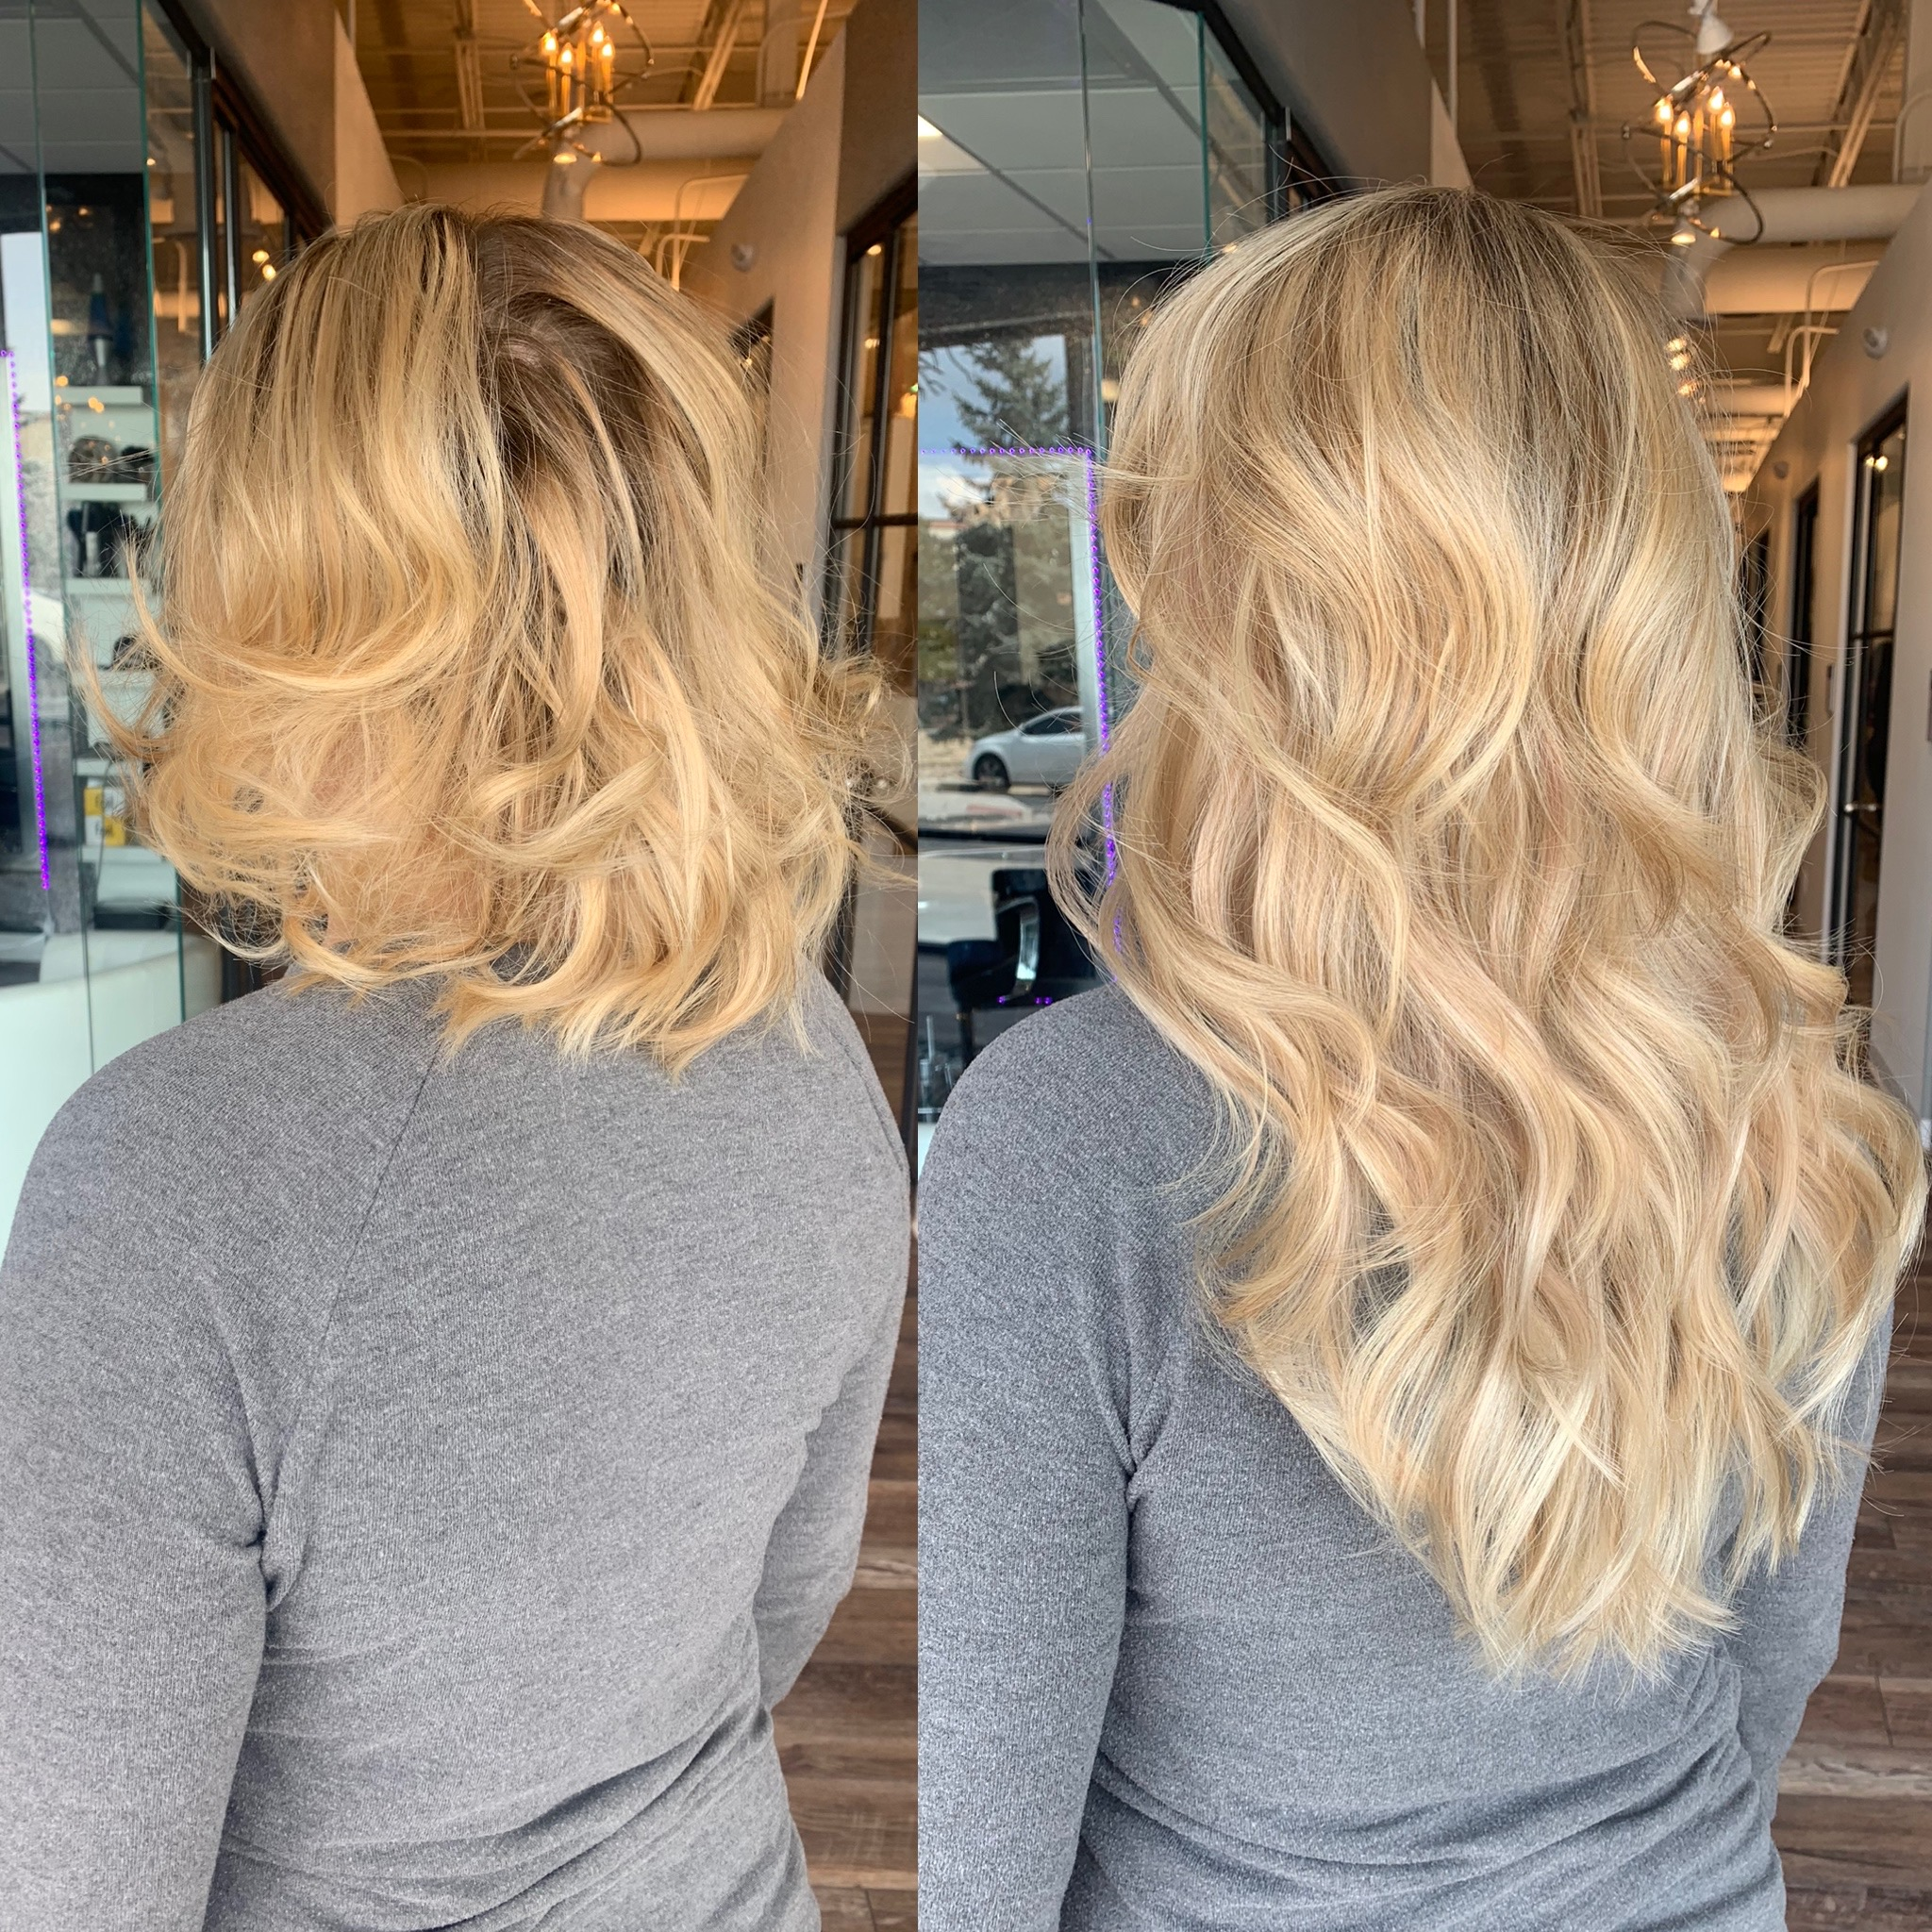 Hair extensions Denver photos before and after - by glo extensions